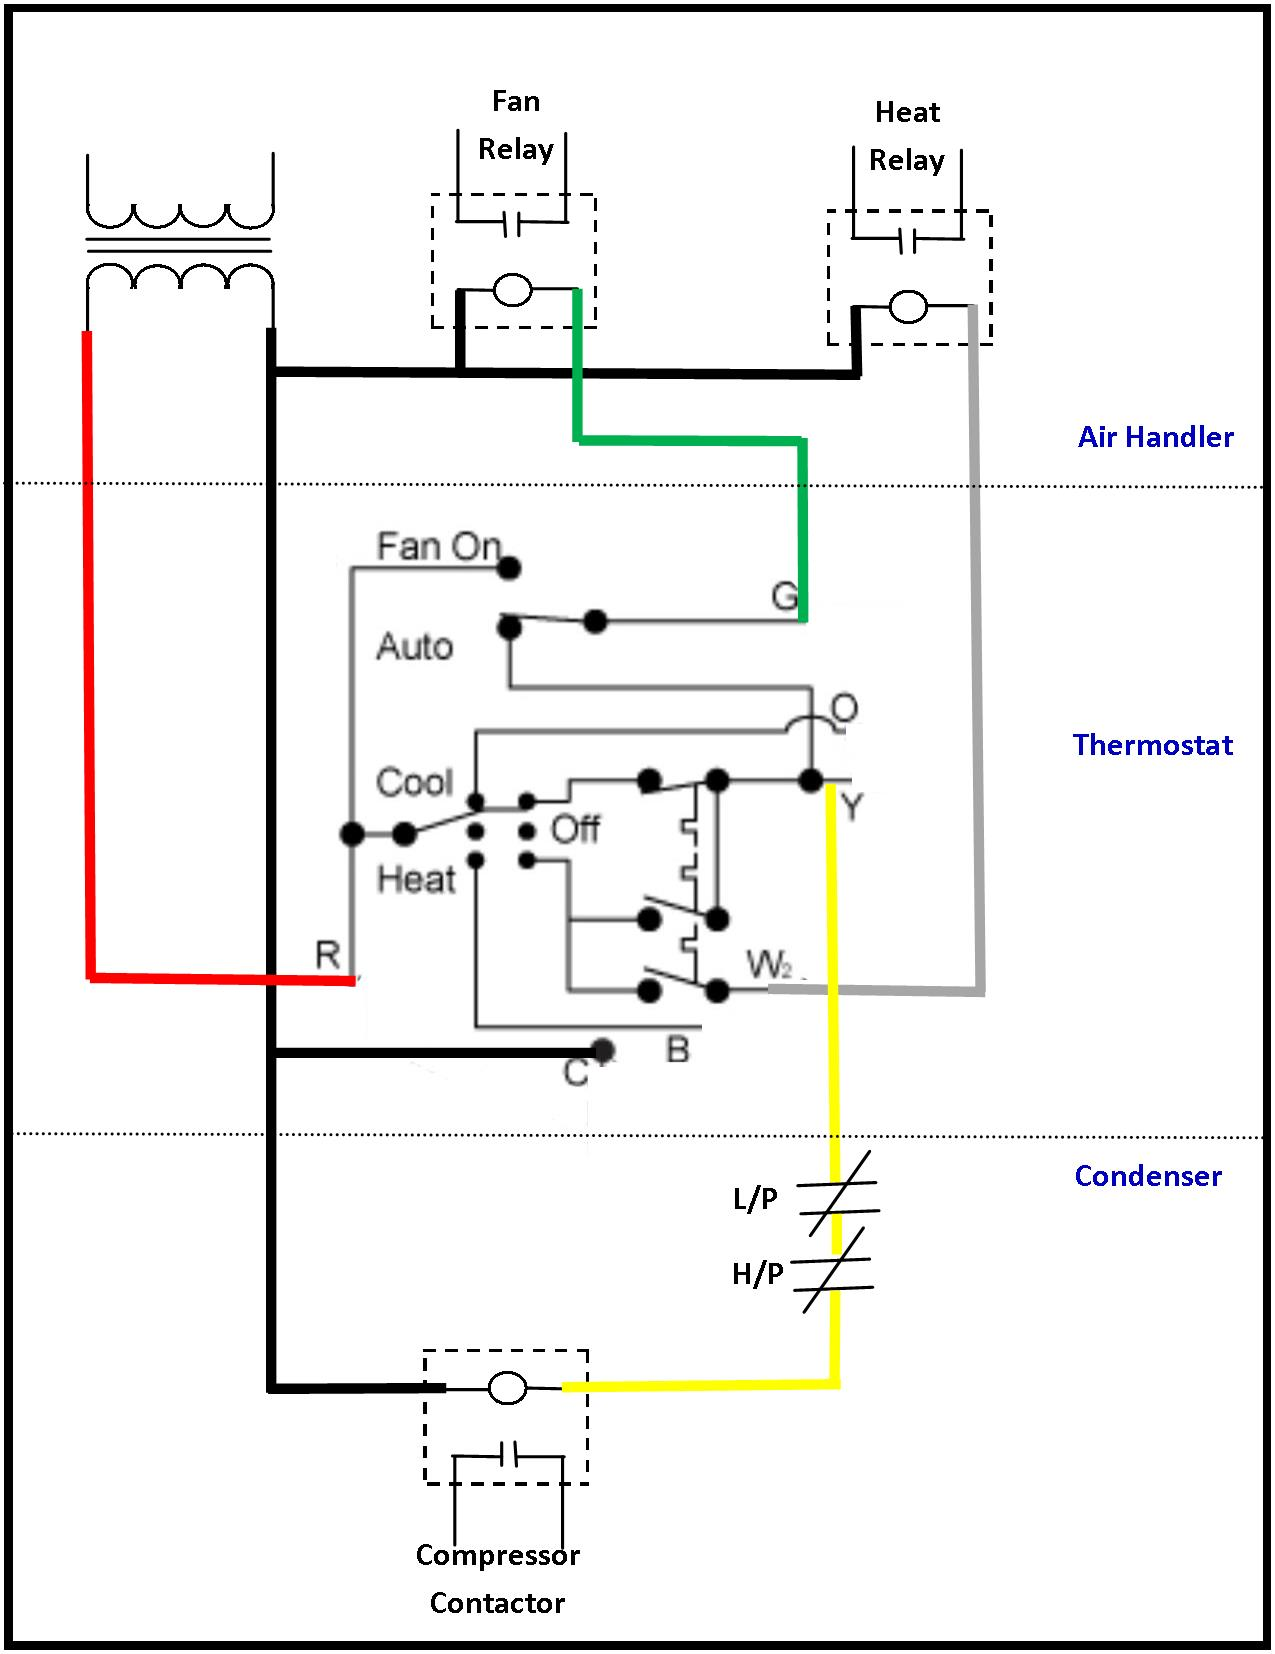 Transformer Wiring Diagrams : Wiring diagram for volt transformer free